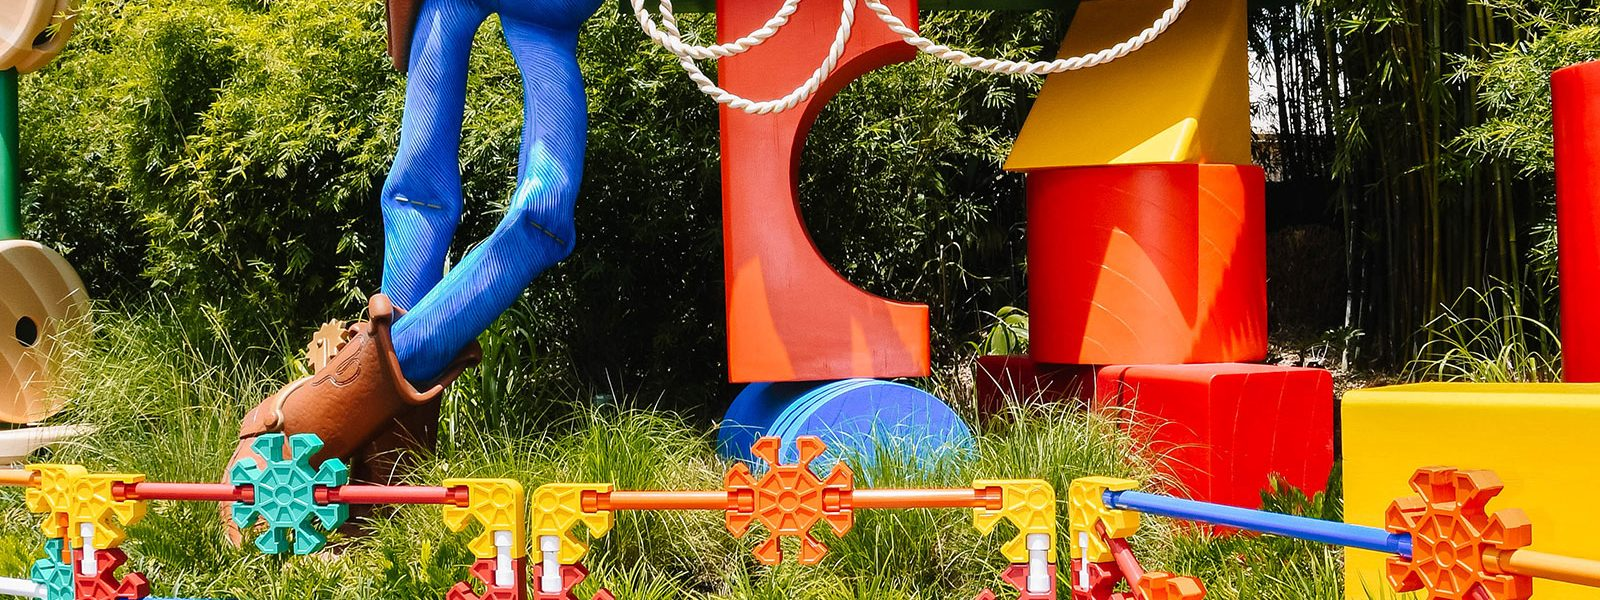 Our Family's Disney Travel Diary: Toy Story Land Review